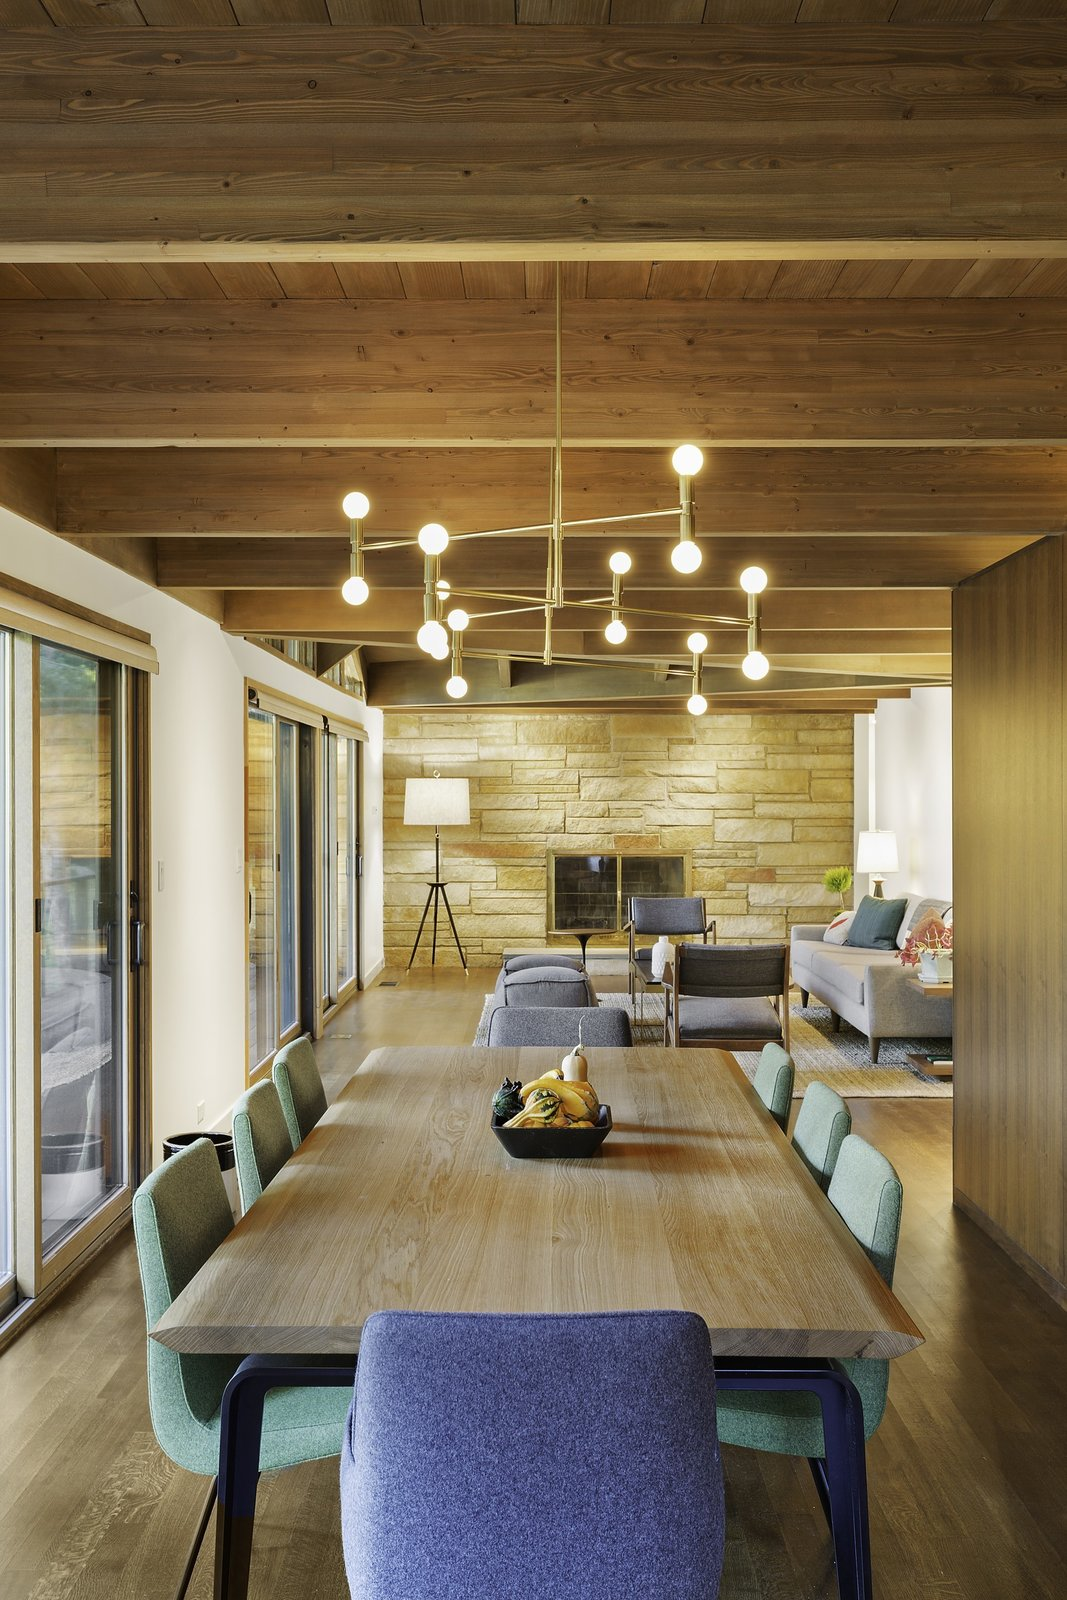 """""""The new floor plan is considerably more open than the original plan, and the interior and exterior details have been simplified and made consistent,"""" Schultz said. A Lambert & Fils light fixture illuminates a dining set by Ligne Roset.  City Skyline by Kelly Dawson"""